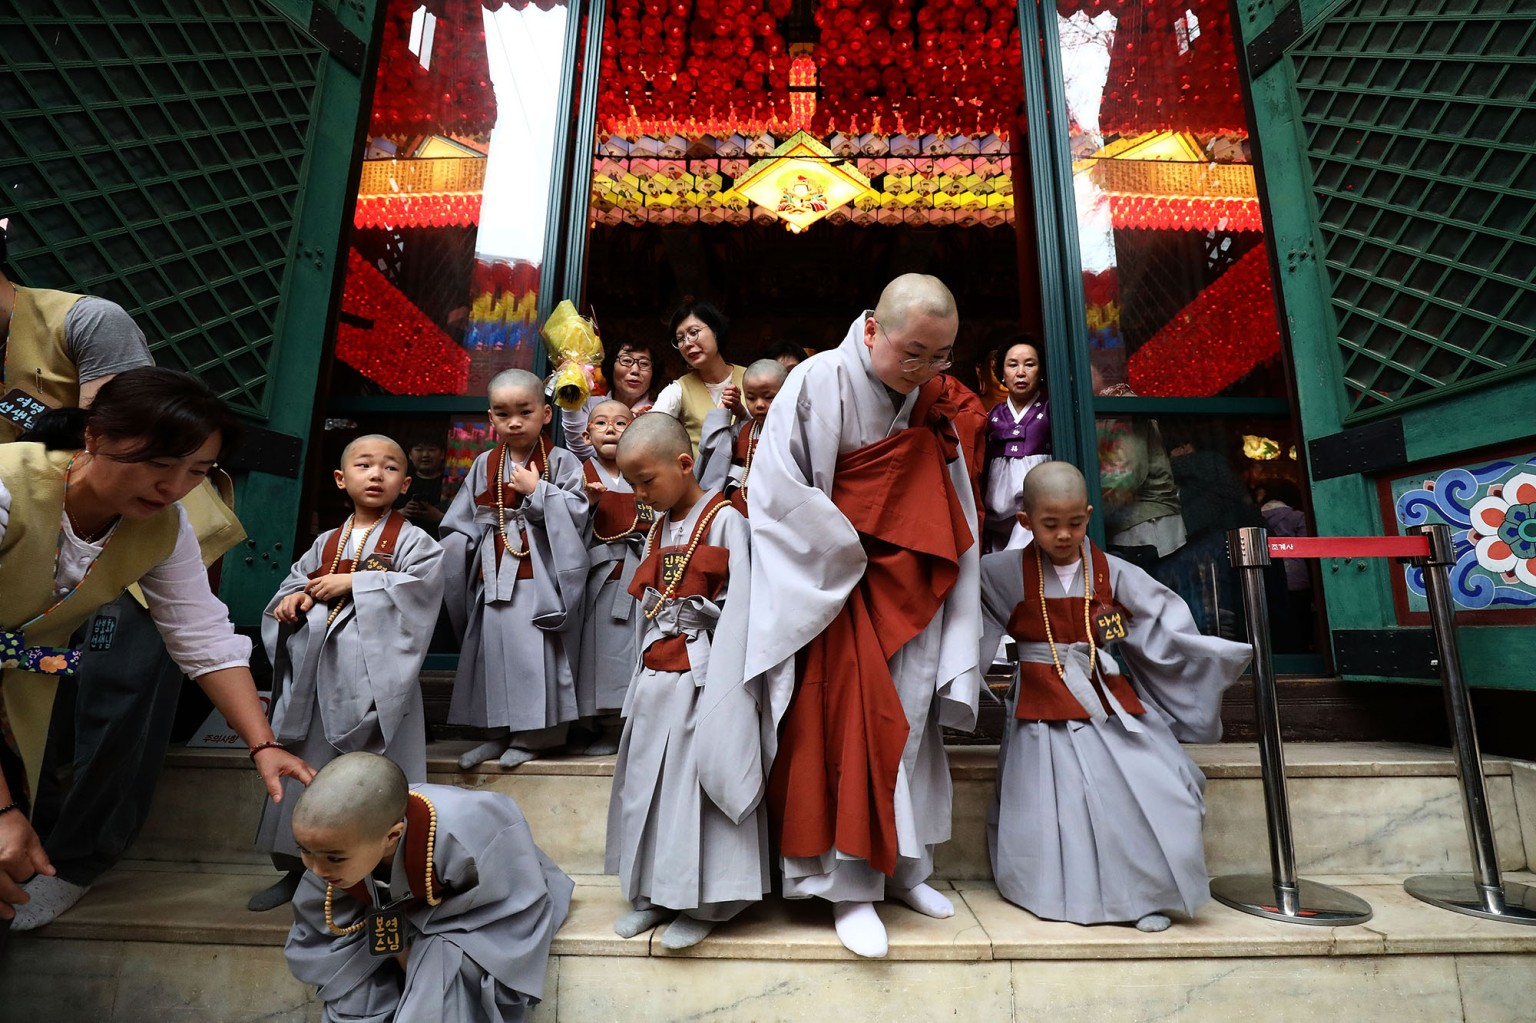 Children attend the Children Becoming Buddhist Monks ceremony at a Chogye temple on May 2 in Seoul, South Korea. Children got their hair shaved by monks to celebrate the upcoming birthday of Buddha.  Chung Sung-Jun/Getty Images